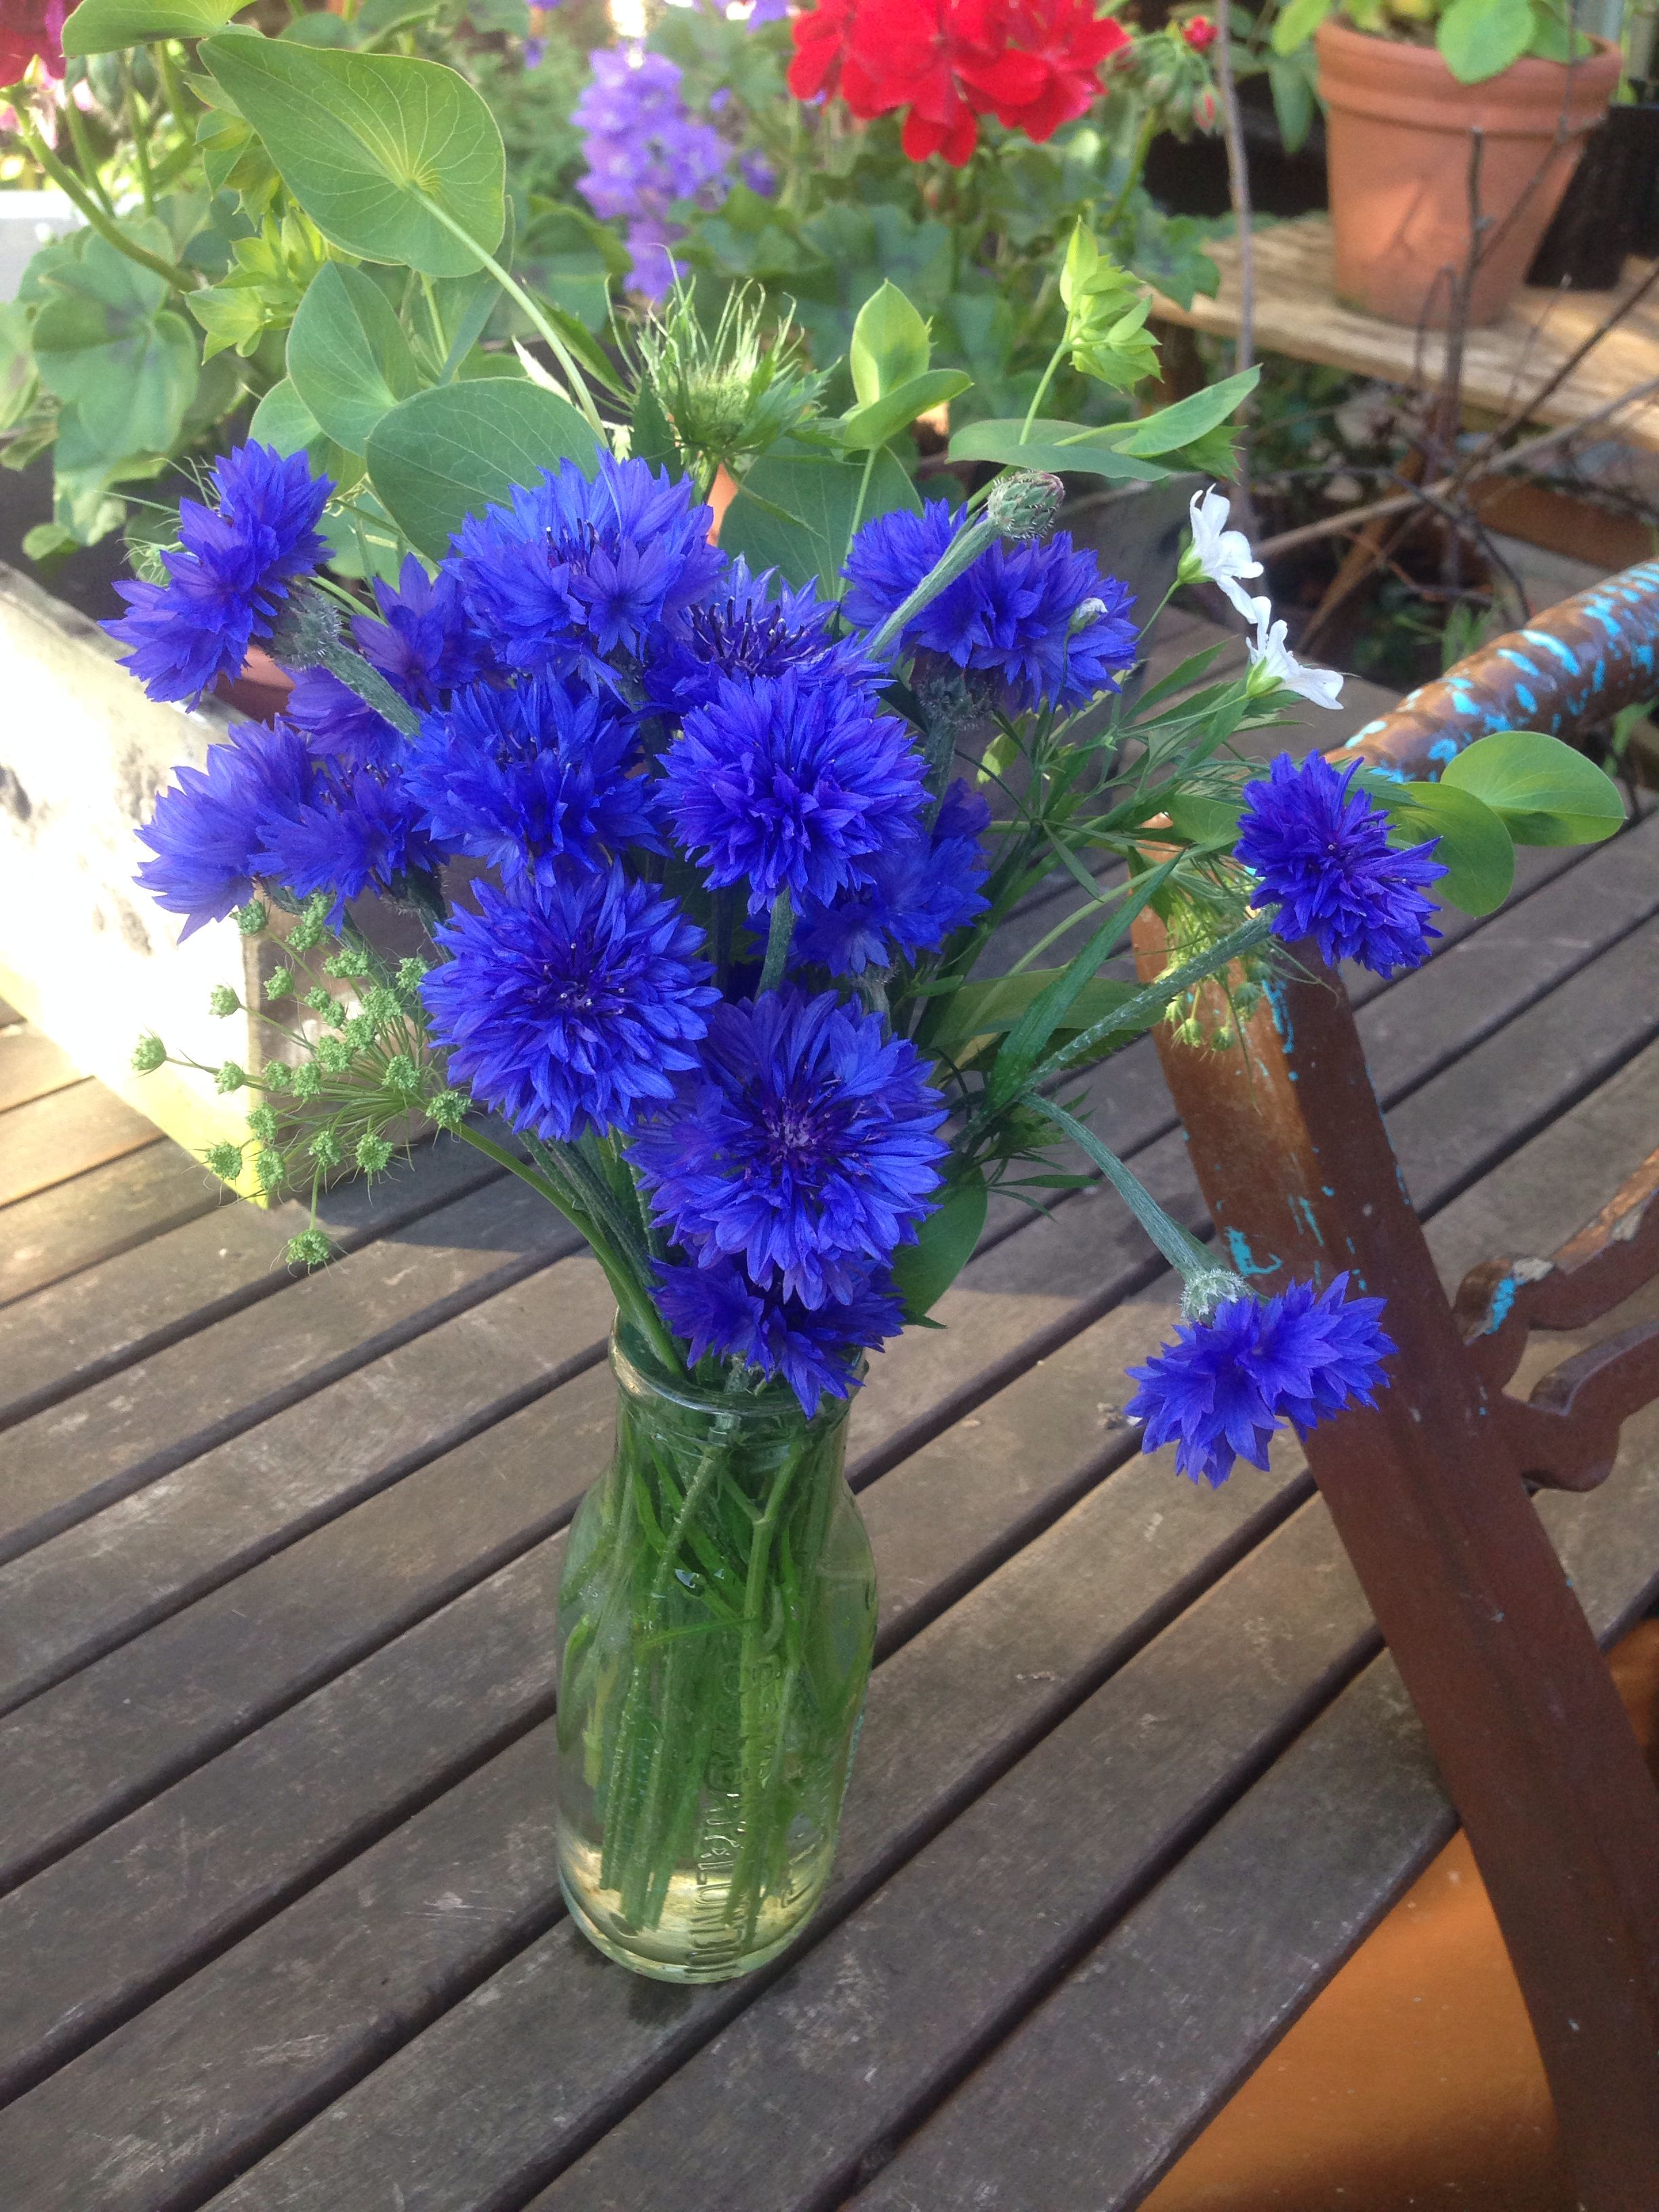 Cornflower 'blue ball', Ammi Majus & Bupleurum. Sown straight in the ground 2nd Nov 2013. Looking gorgeous in a vase, 12th June.